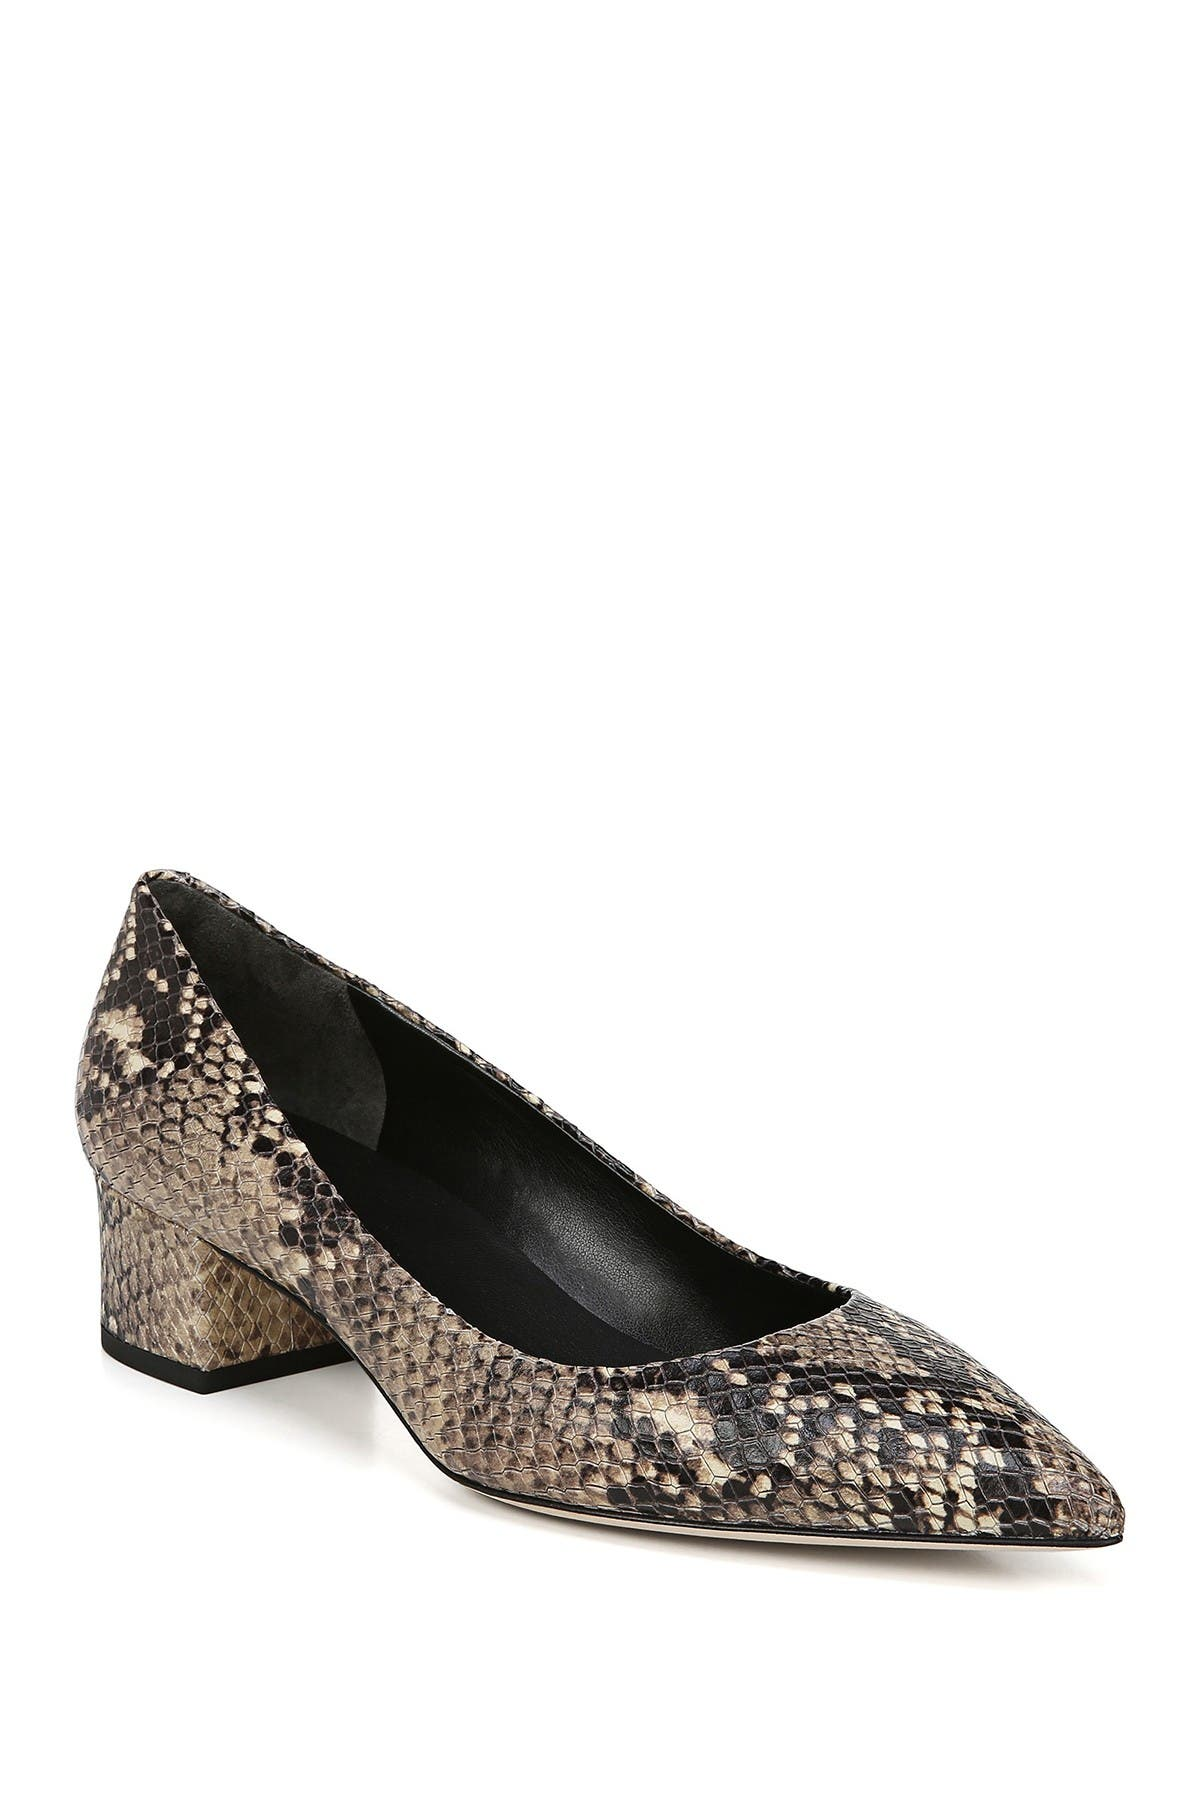 Image of Via Spiga Guervie Block Heel Snake Embossed Pump